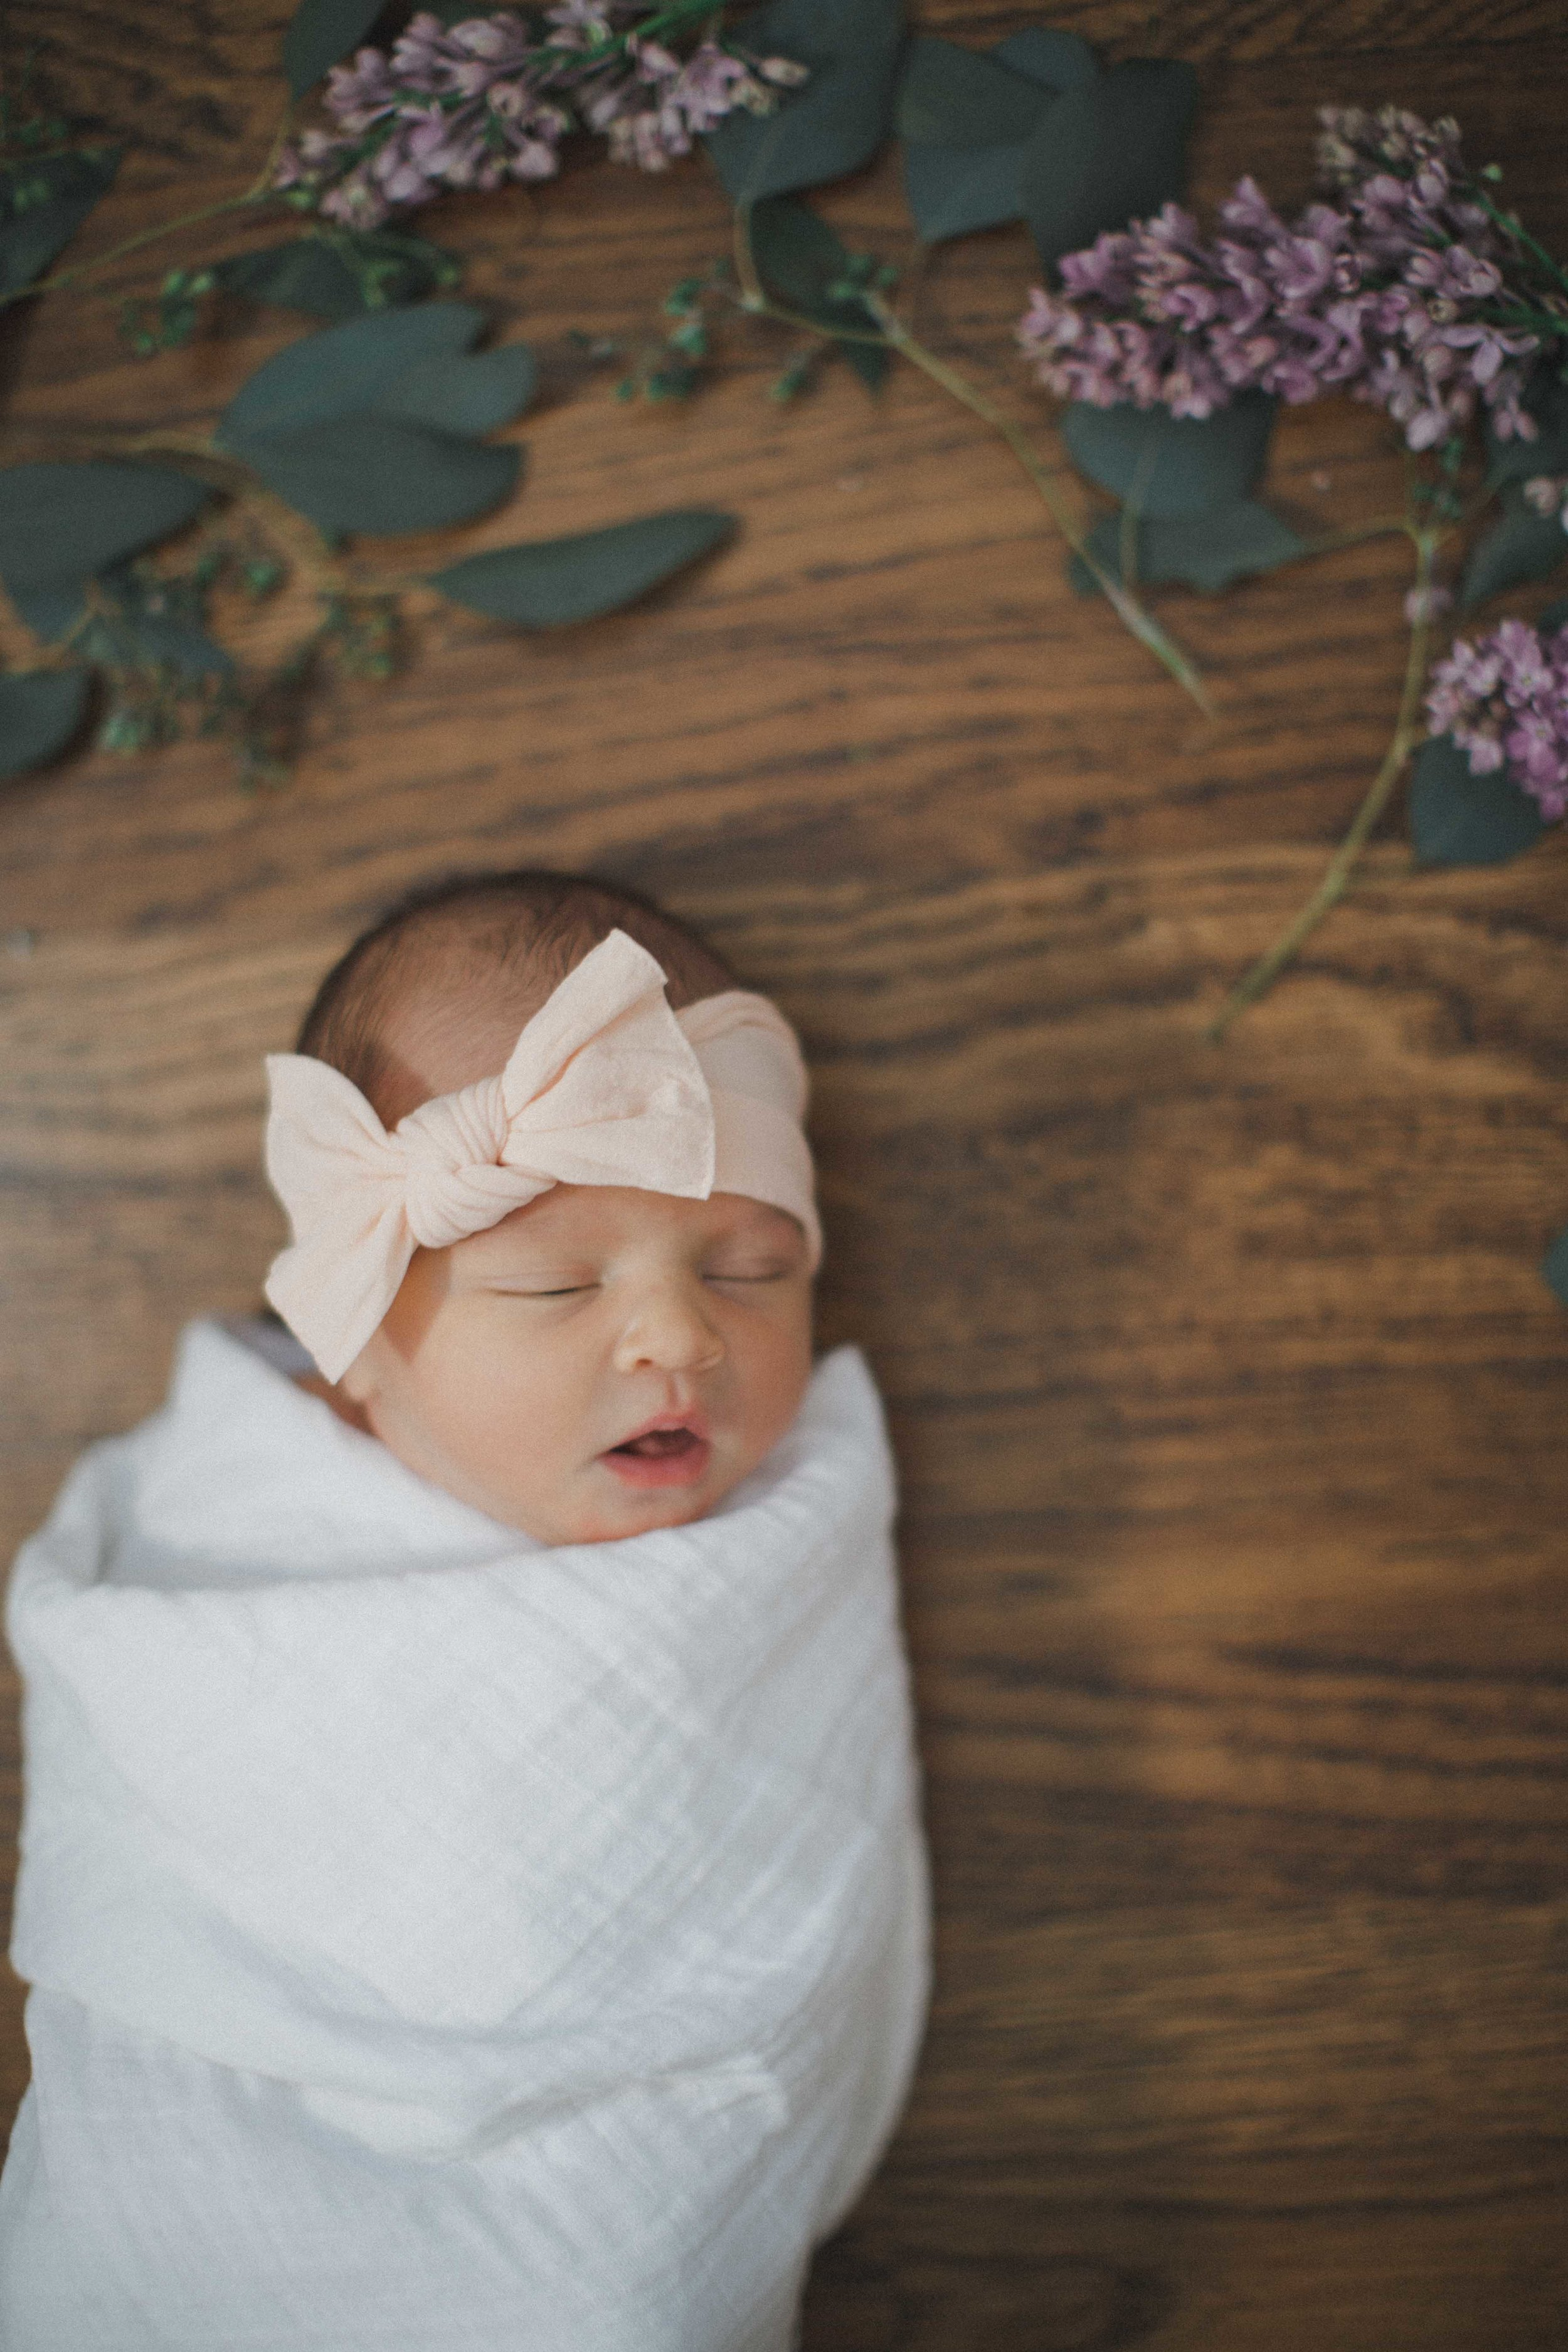 Eloise Newborn Session, Fort Worth newborn photography, natural light newborn photography, flowers newborn photo, delphinium newborn, fort worth photographer, natural light photography, window light newborn, newborn bows, newborn film, newborn lifestyle photos